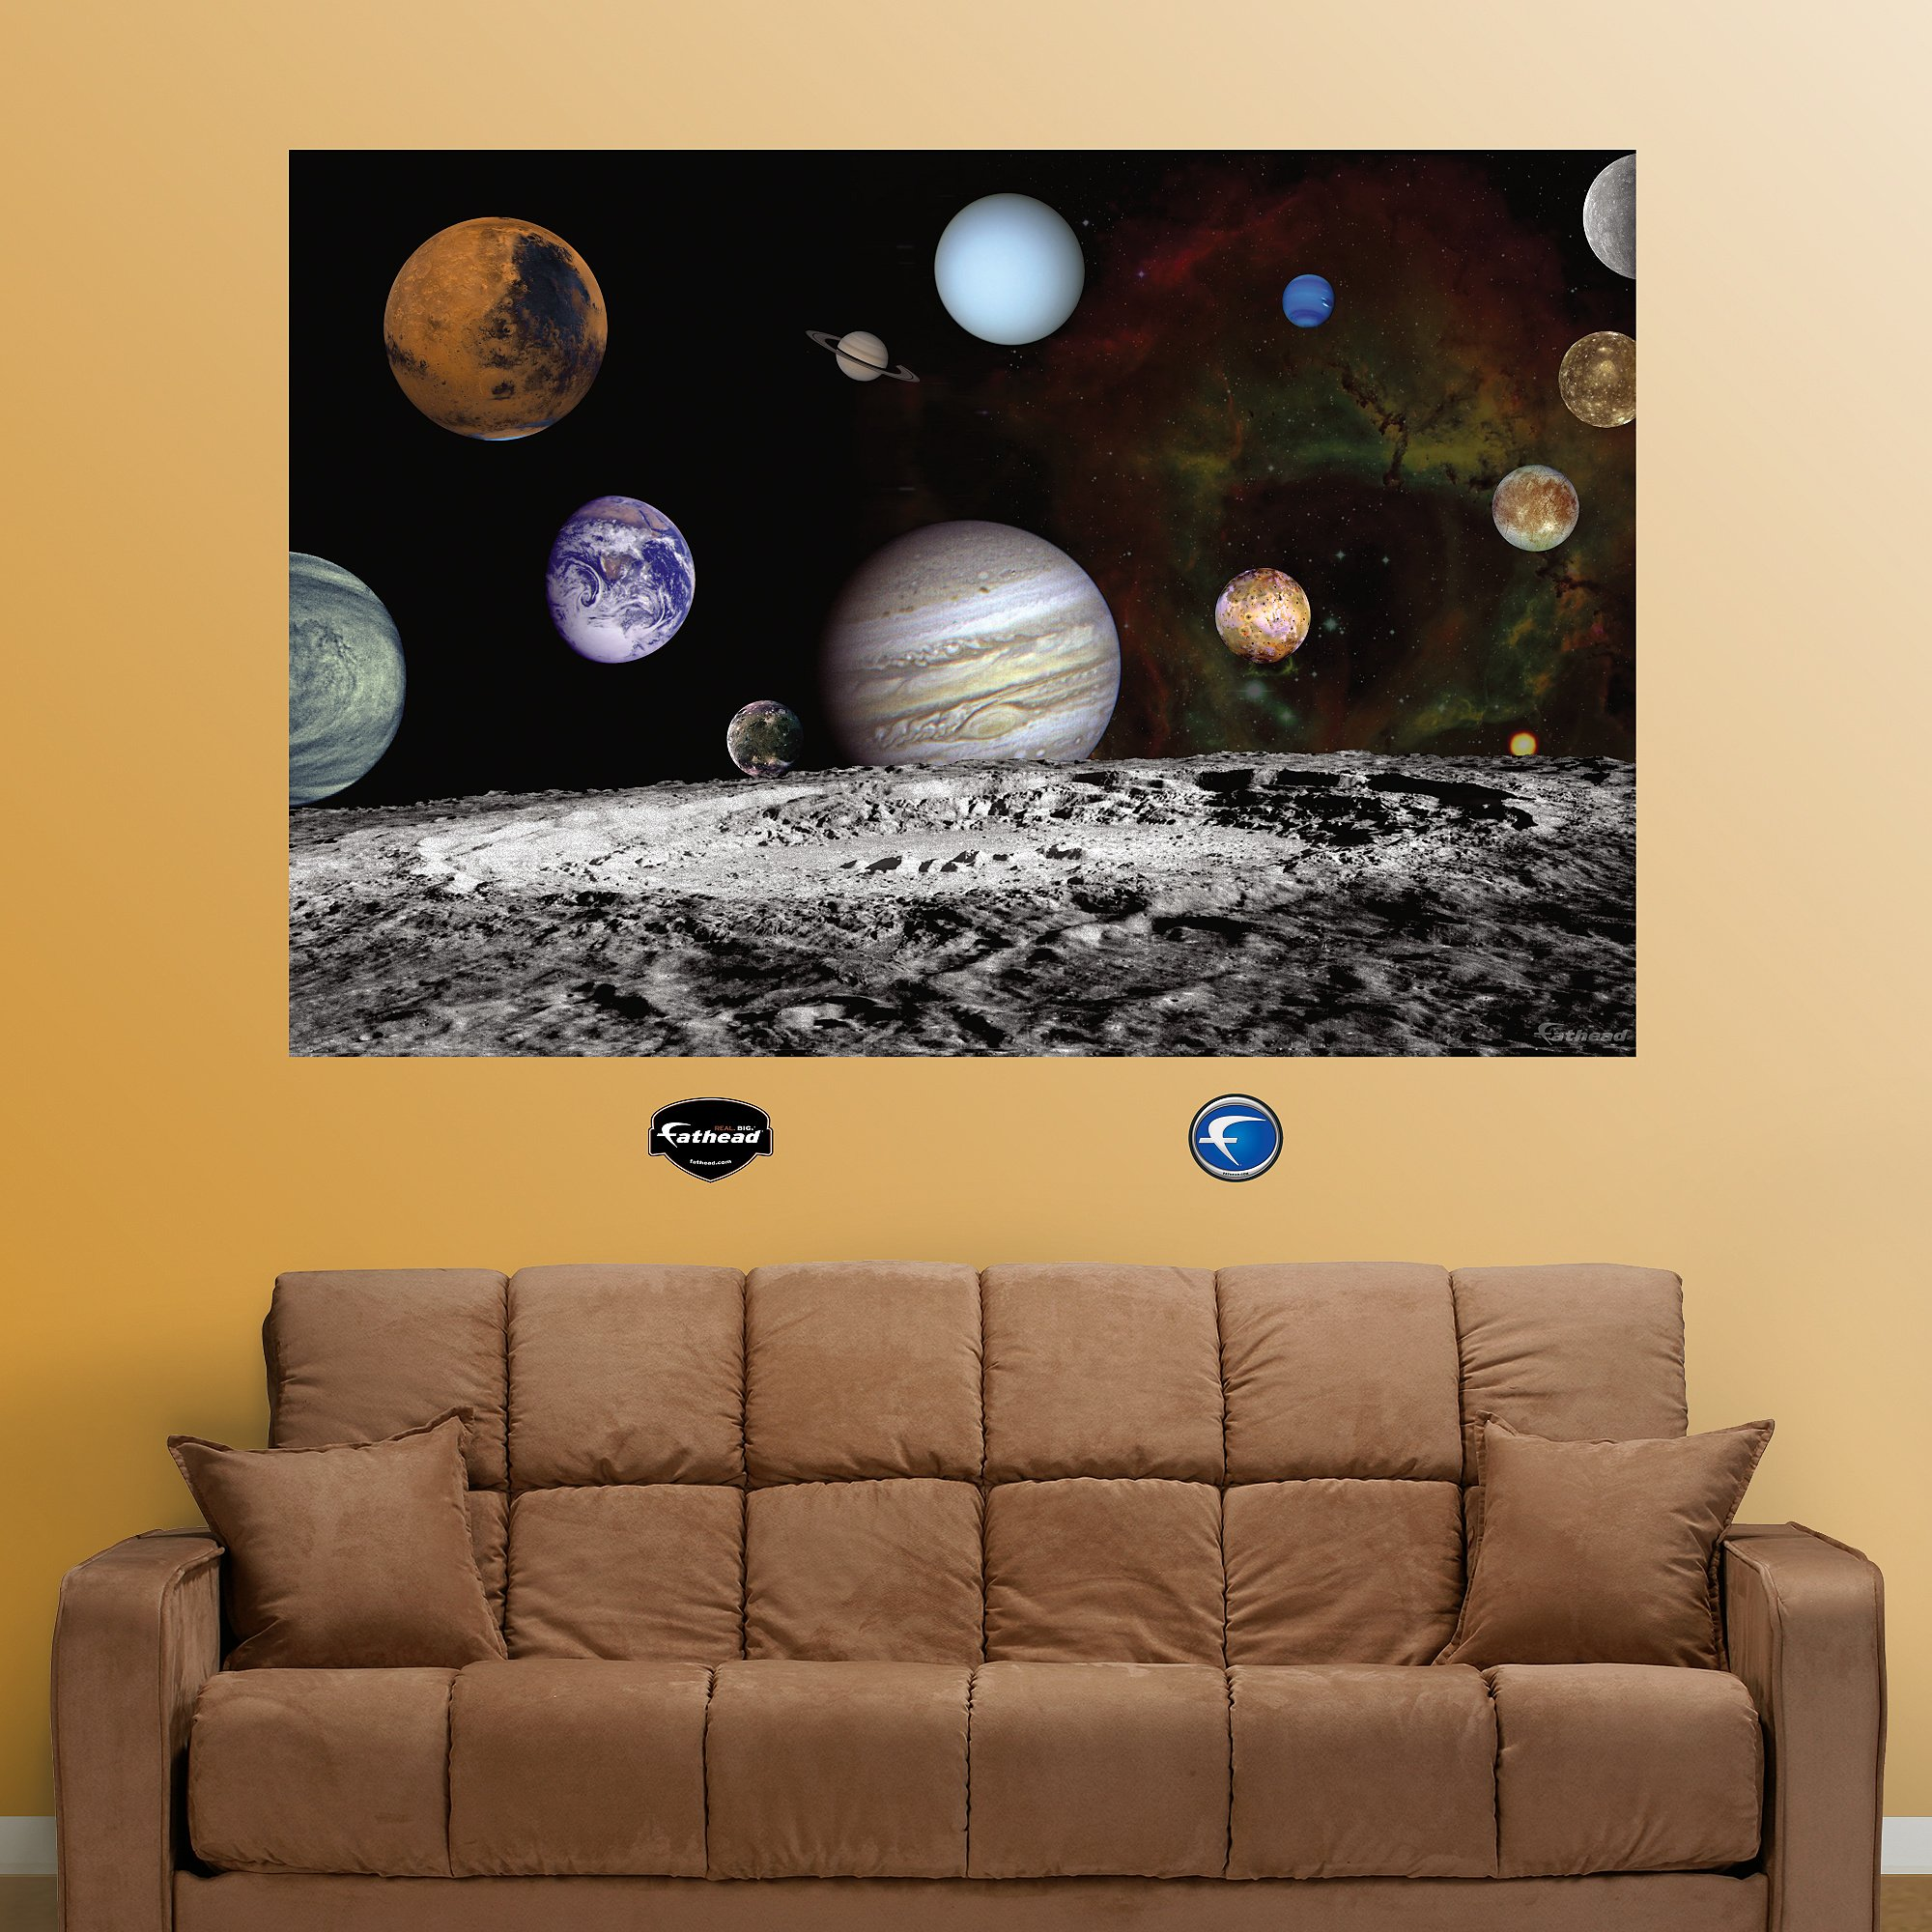 FATHEAD The Solar System Artist Concept Graphic Wall Décor